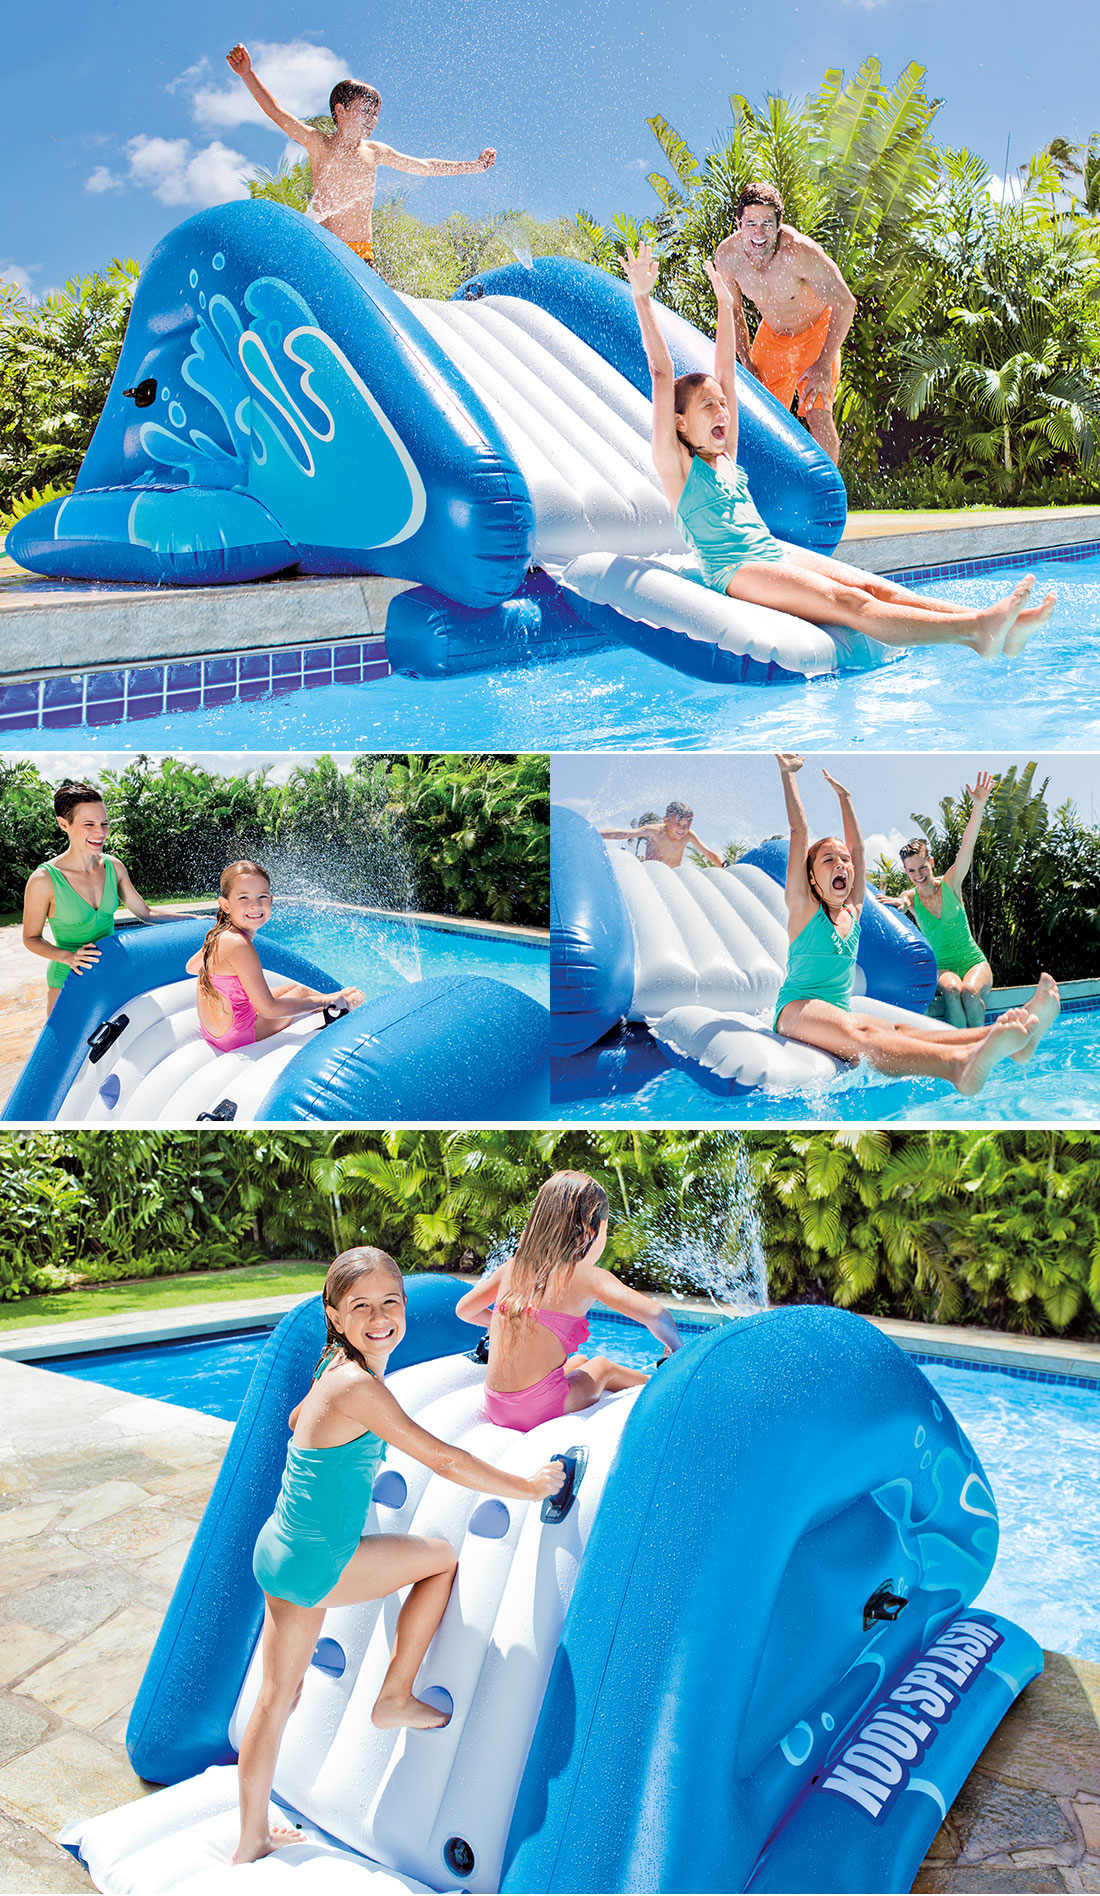 Toboggan gonflable pour piscine enterr e for Rustine pour piscine intex